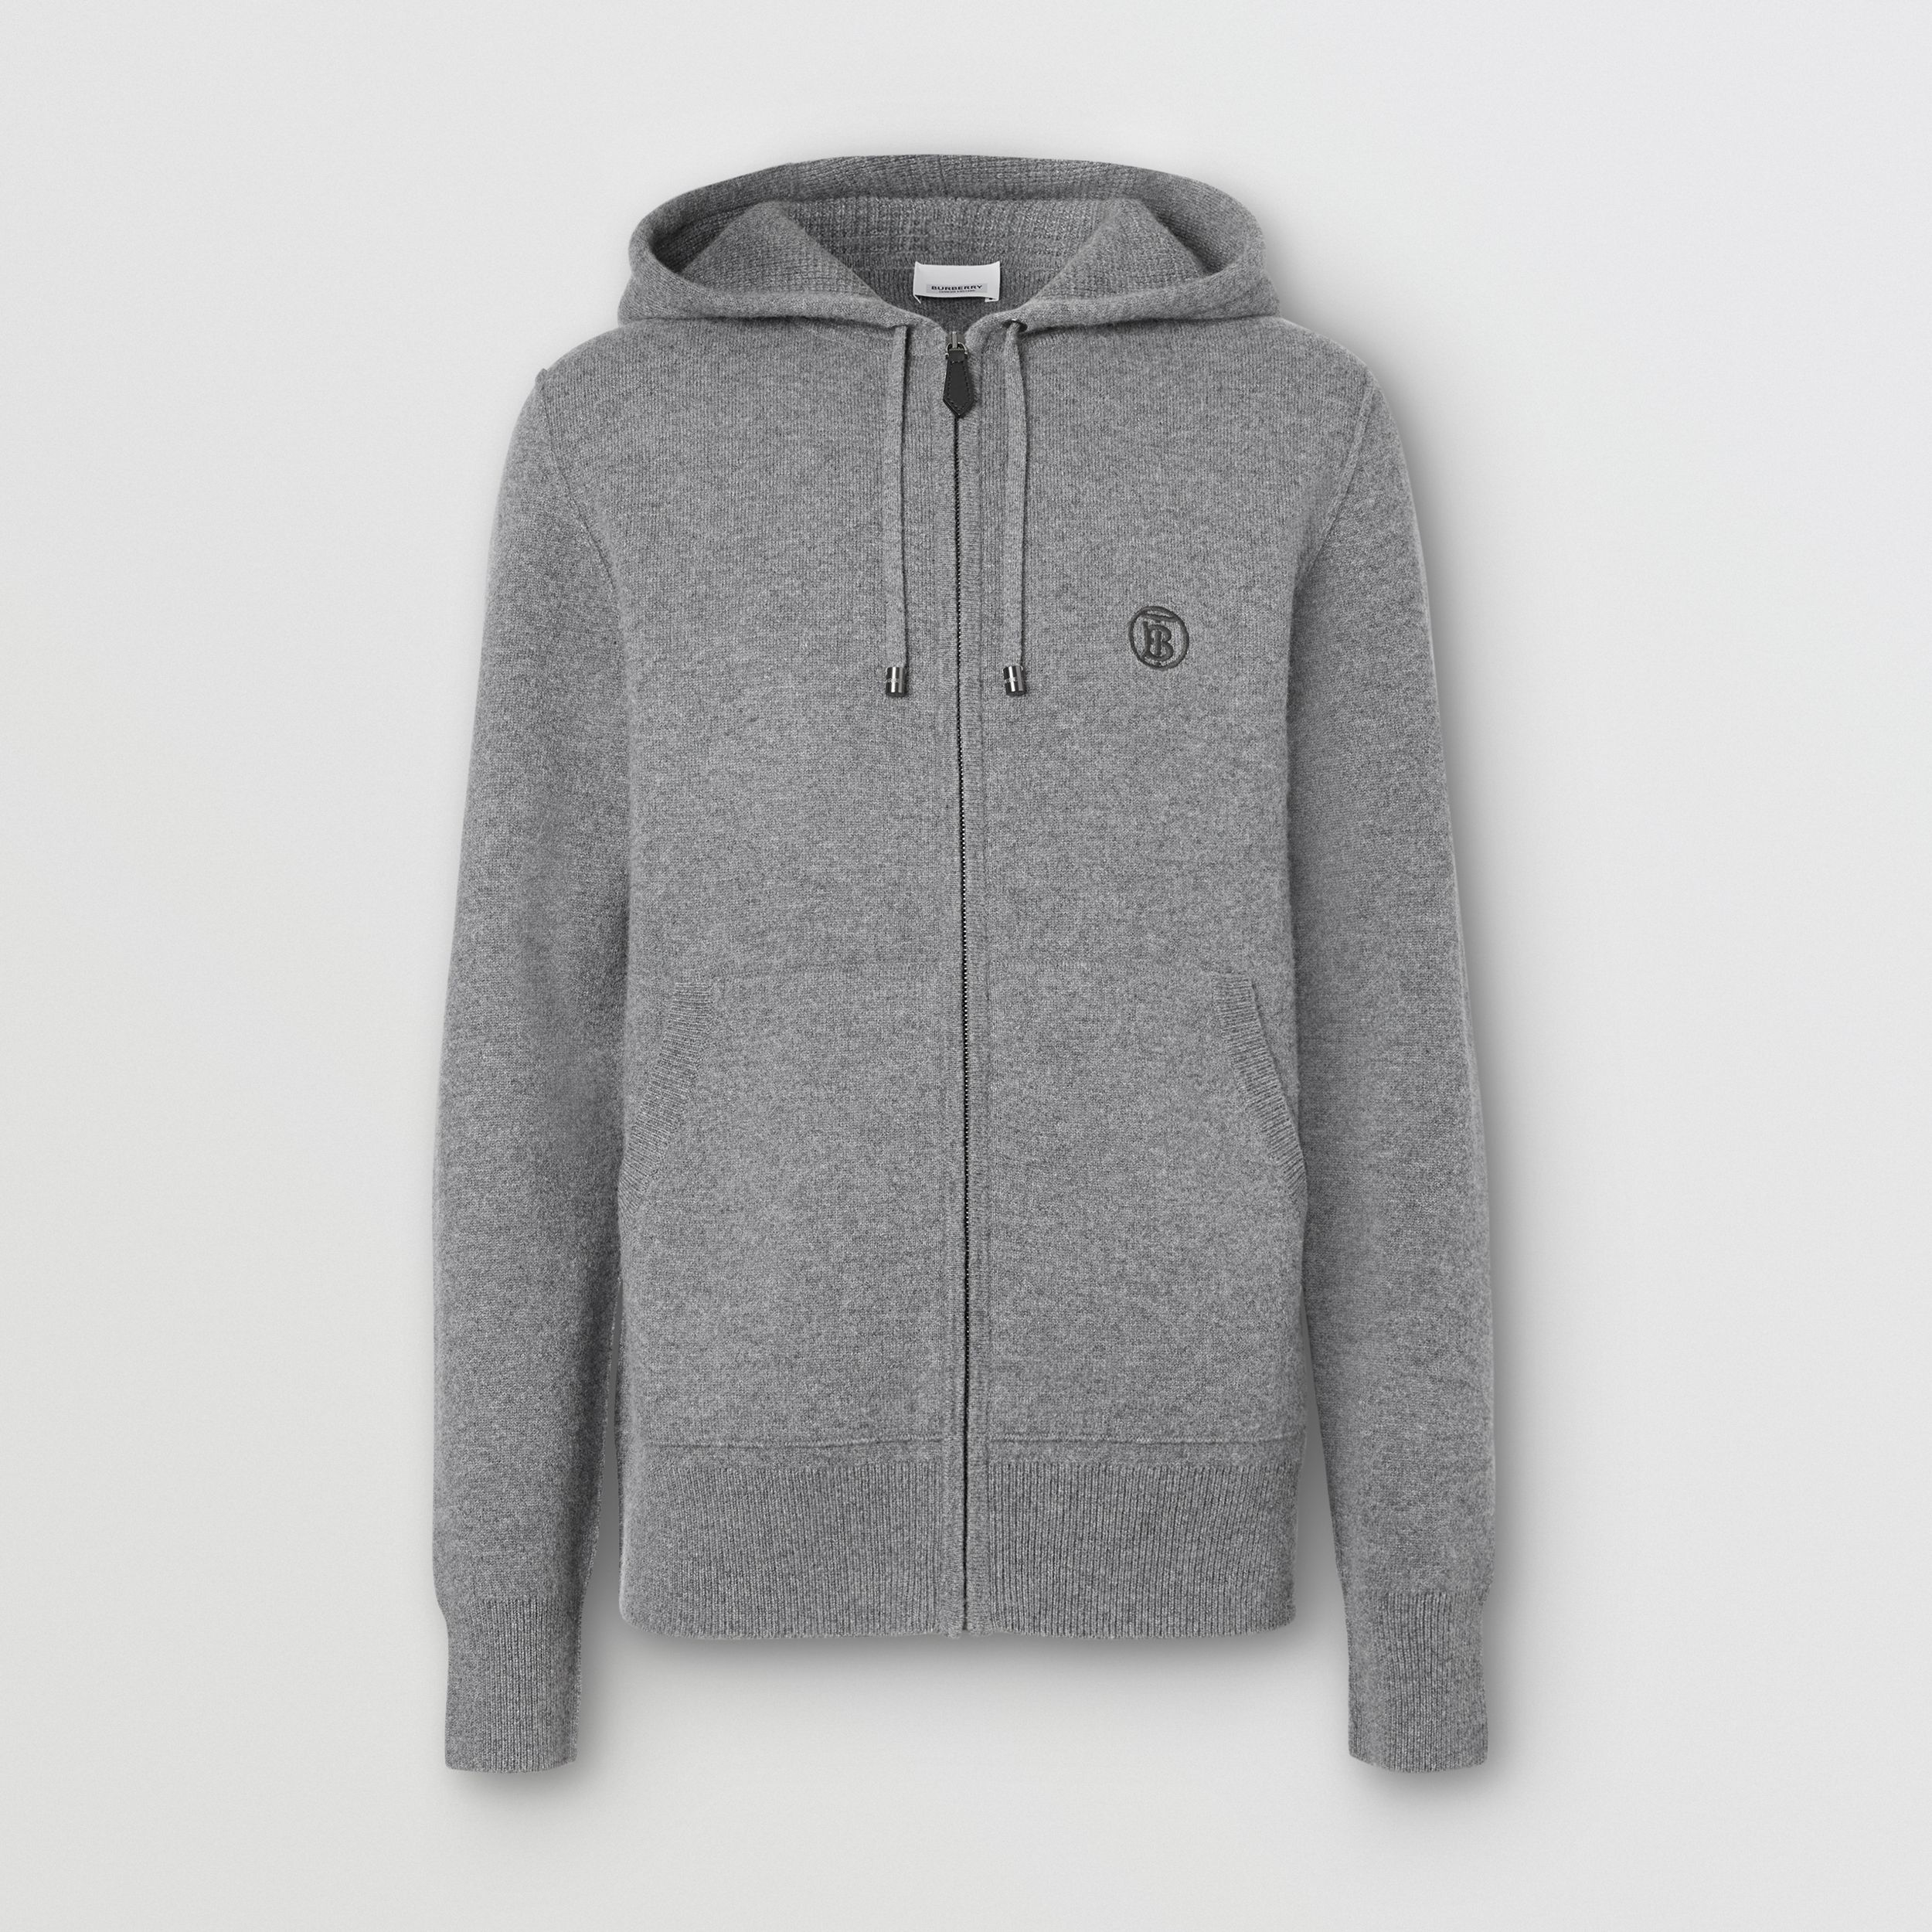 Monogram Motif Cashmere Blend Hooded Top in Mid Grey Melange - Men | Burberry Hong Kong S.A.R. - 4